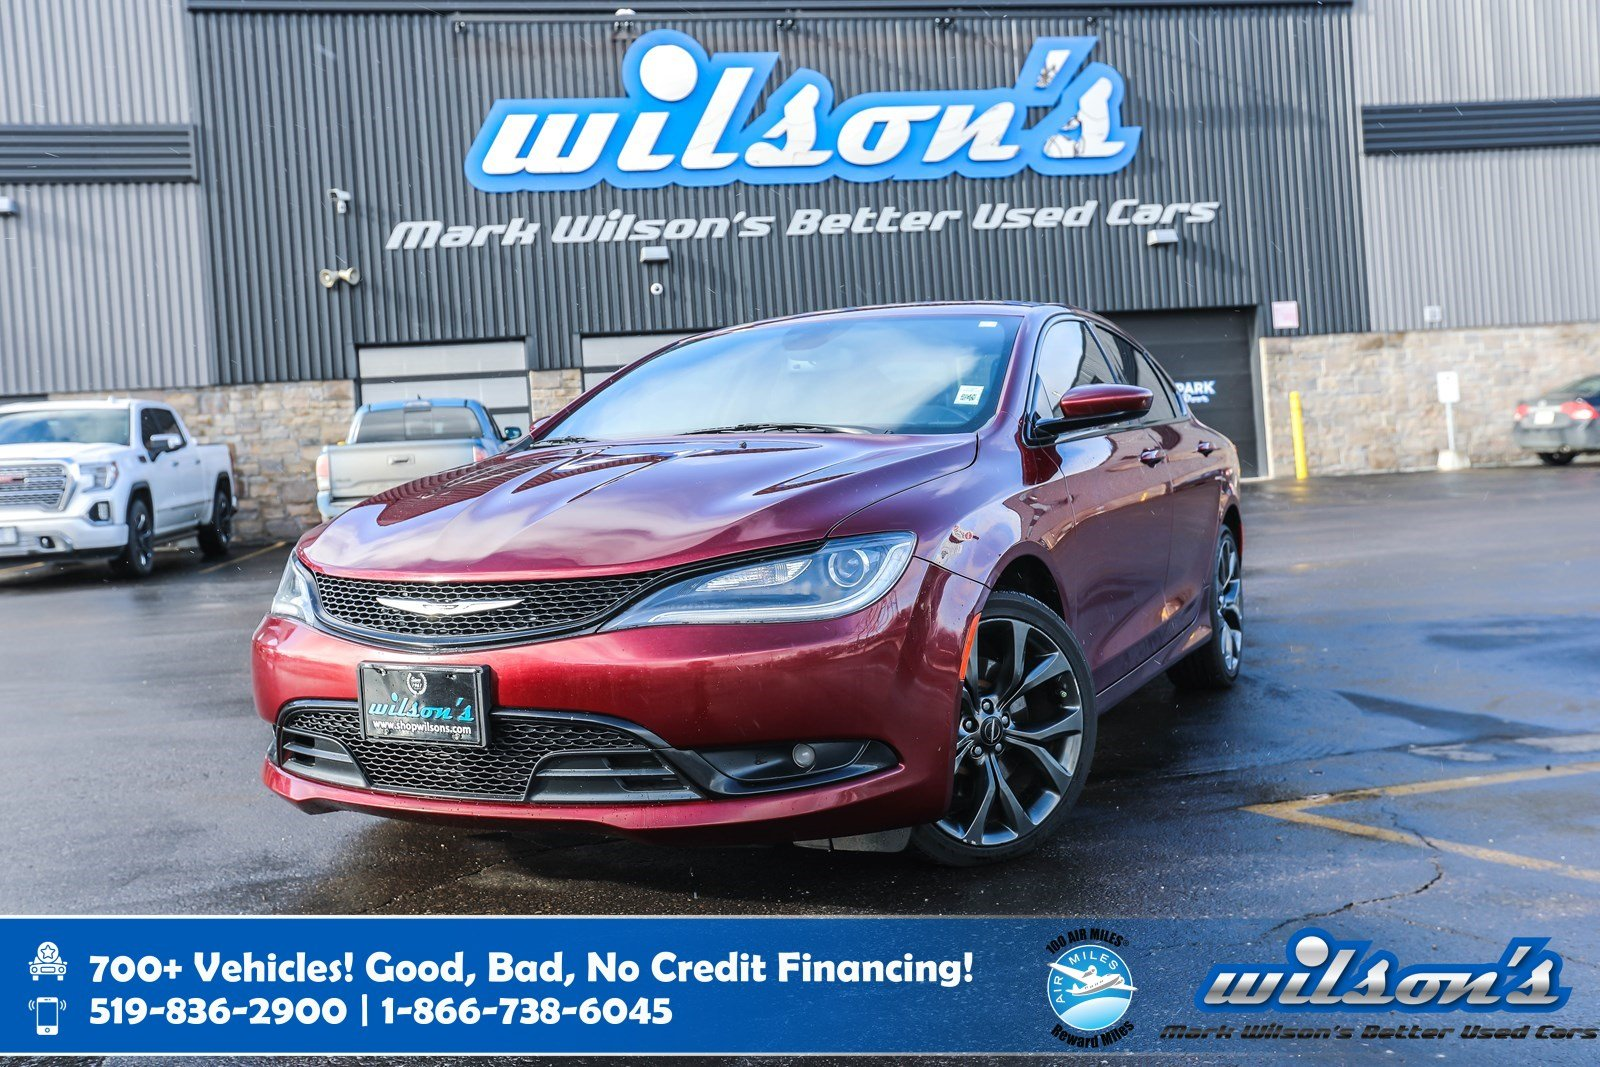 Certified Pre-Owned 2015 Chrysler 200 S AWD, Sport Seats w/Leather Trim! Rear Camera, New Tires, Bluetooth, Remote Start, & more